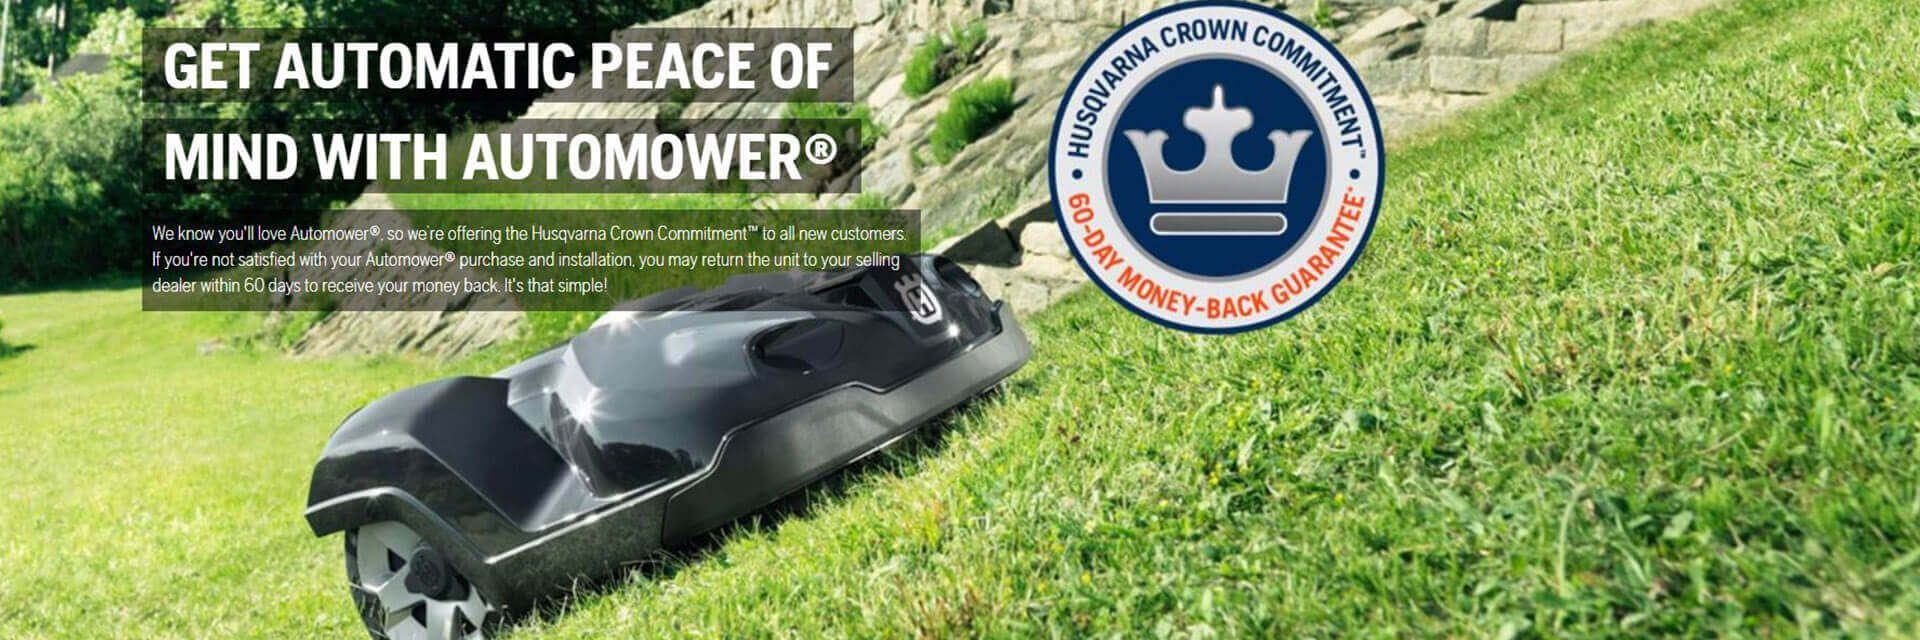 Automower | Husqvarna Robotic Lawn Mowers Available at Anfield Trailers in Lacombe, LA